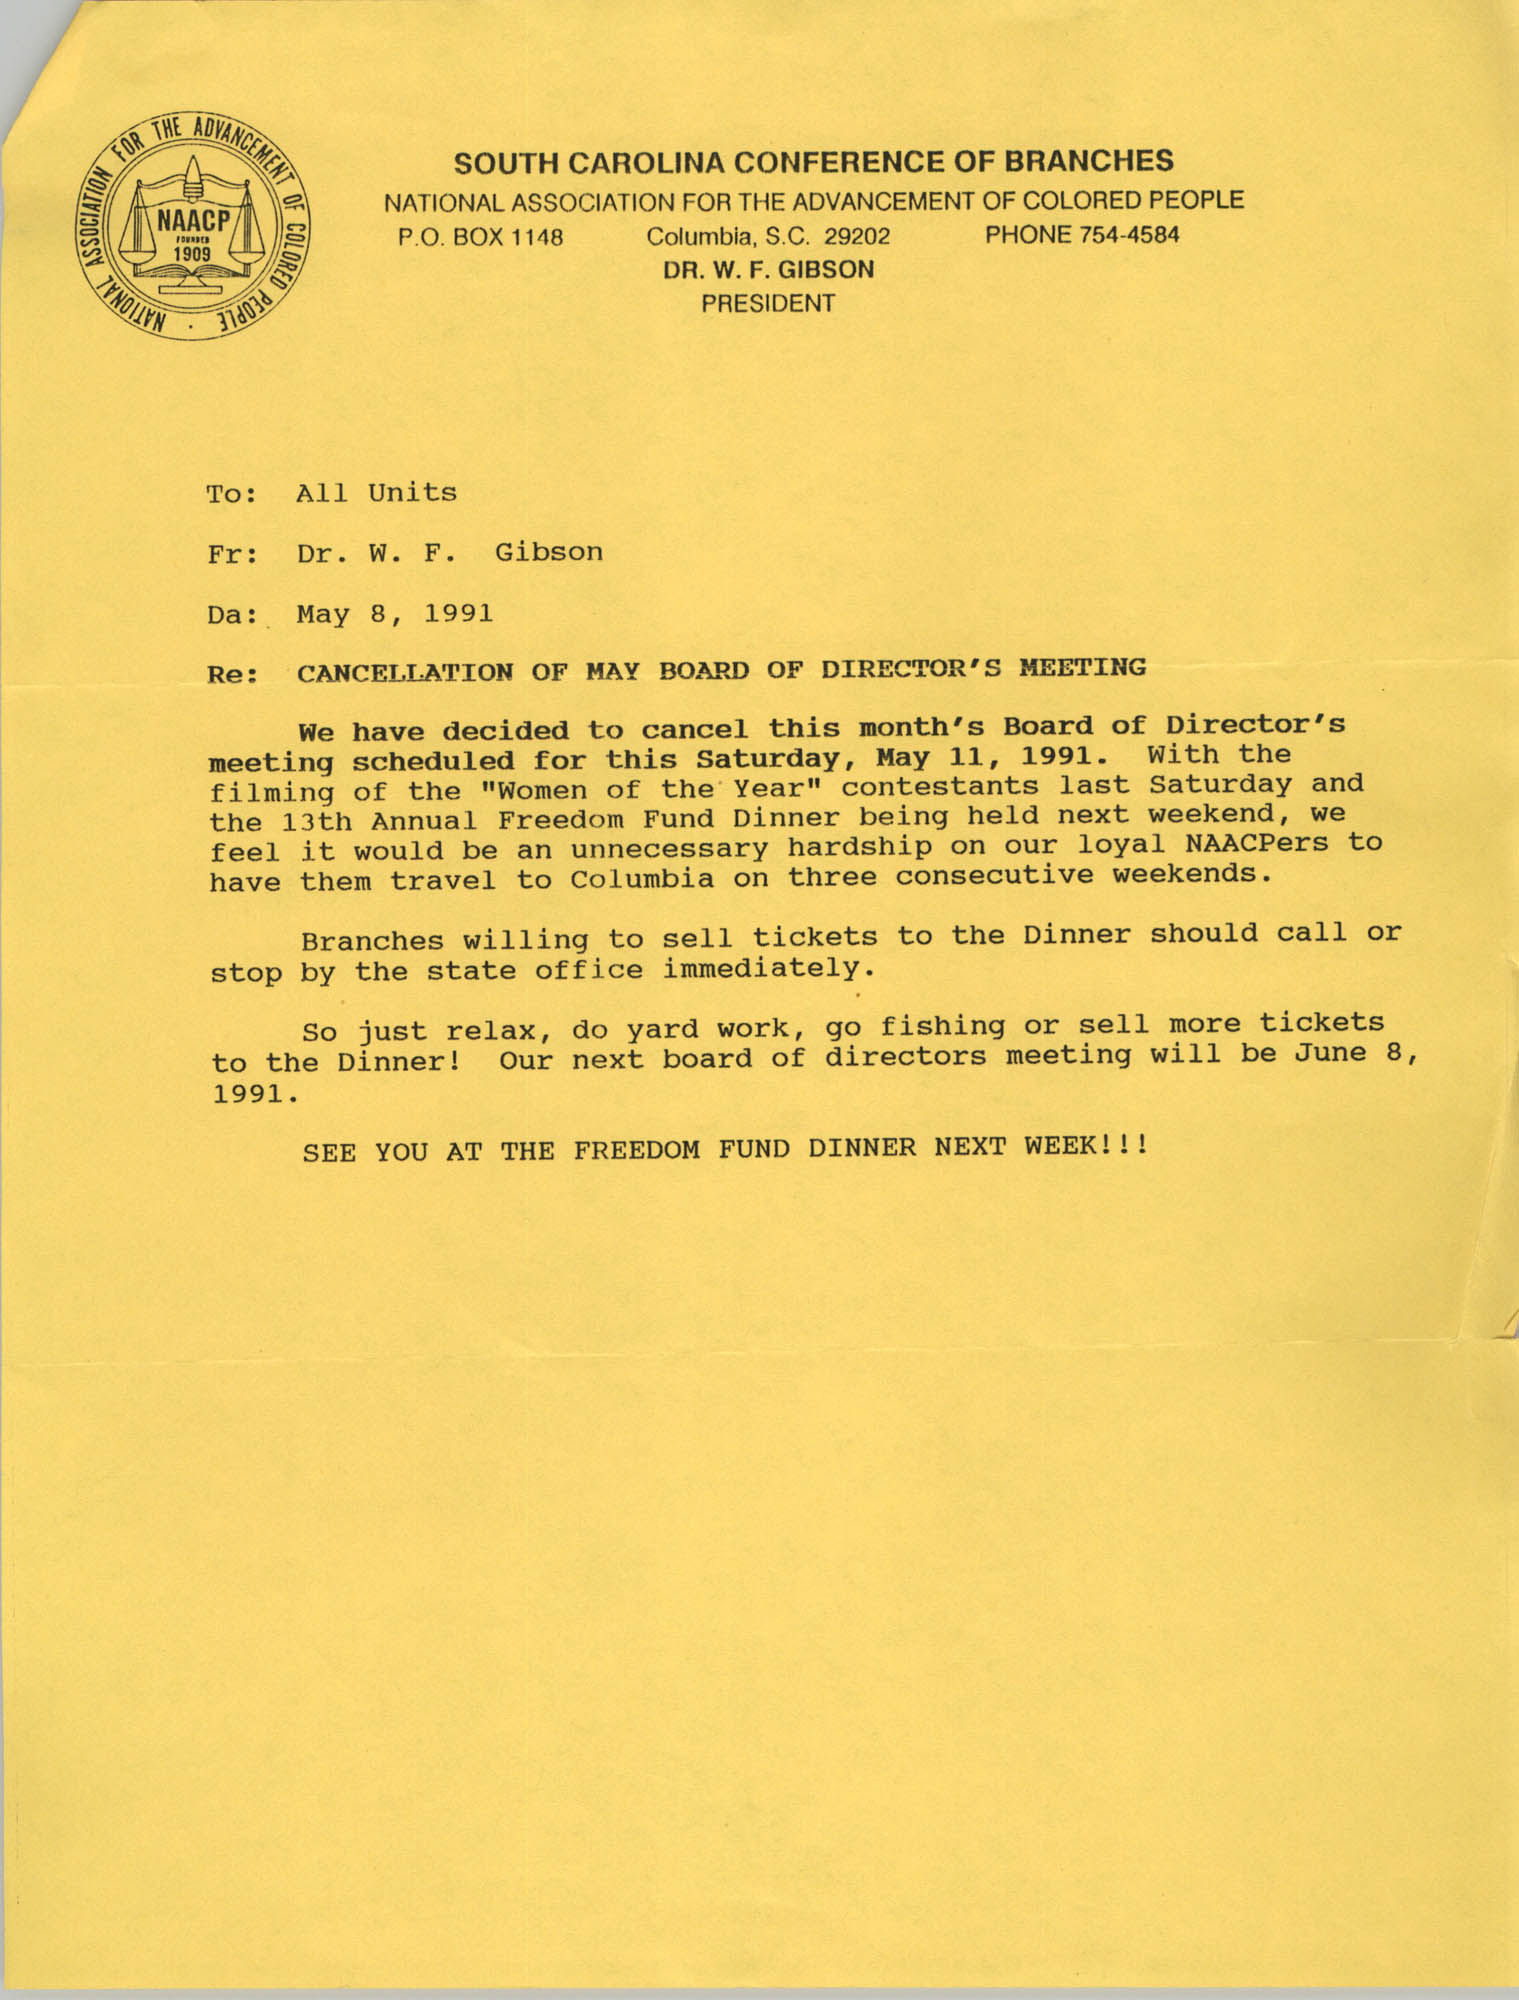 South Carolina Conference of Branches of the NAACP Memorandum, May 8, 1991